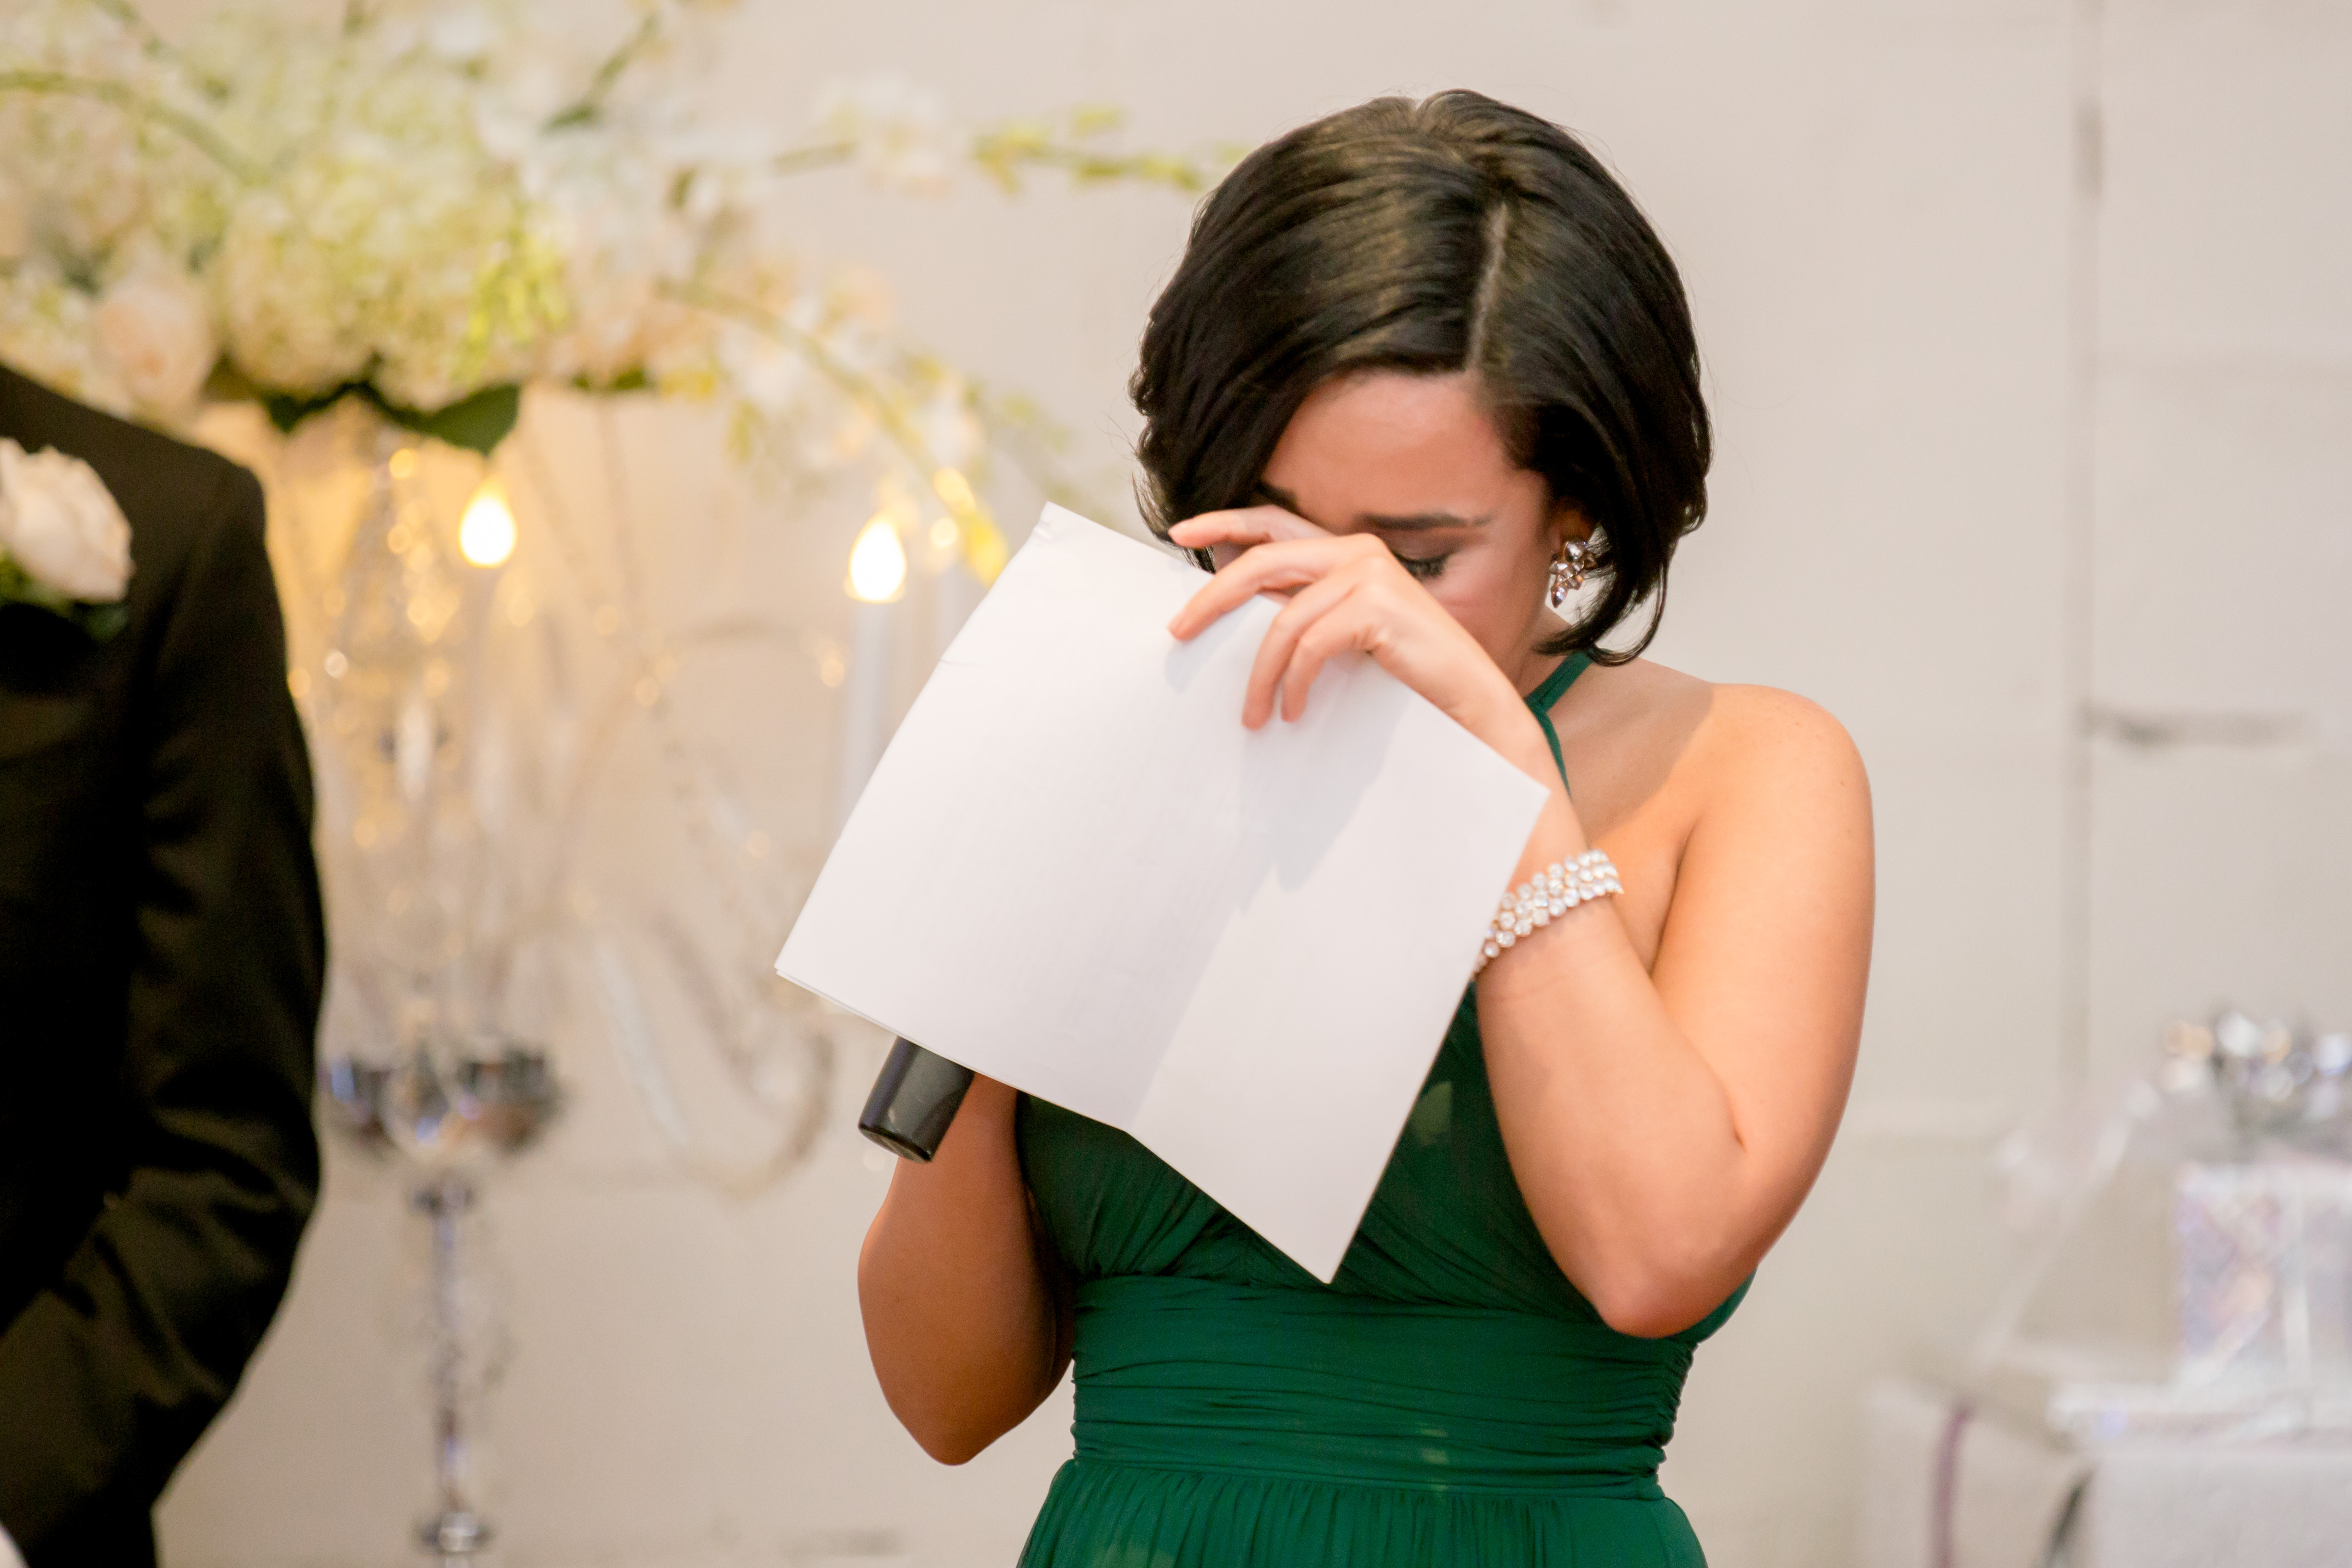 maid of honor wedding toast crying